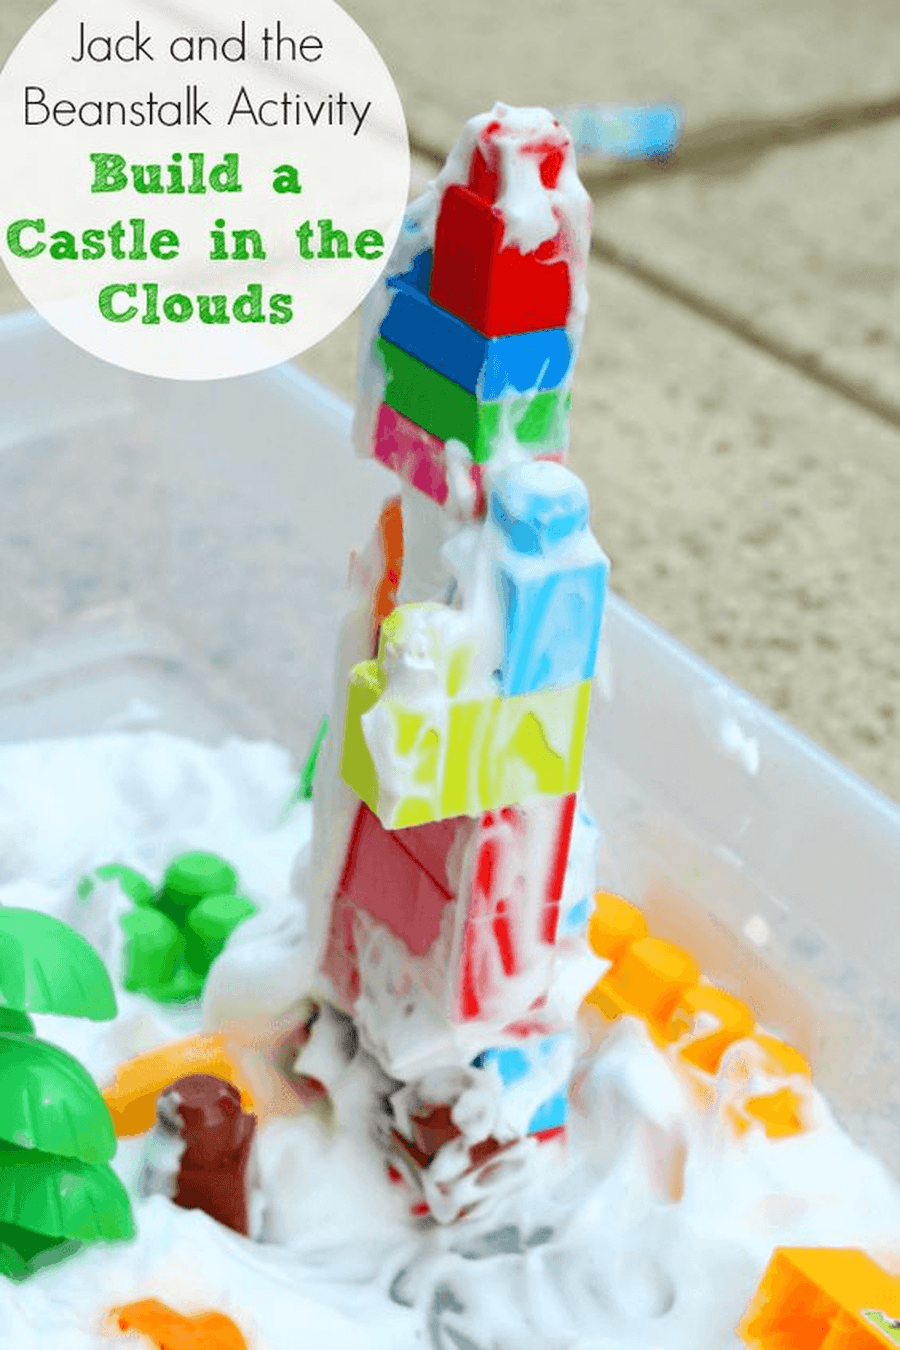 Build a castle for the giant to live in in the sky using some of your bricks. You could add shaving foam or washing up bubbles for the clouds, 'Fee fi fo fum is that someone in nursery I can smell!'.